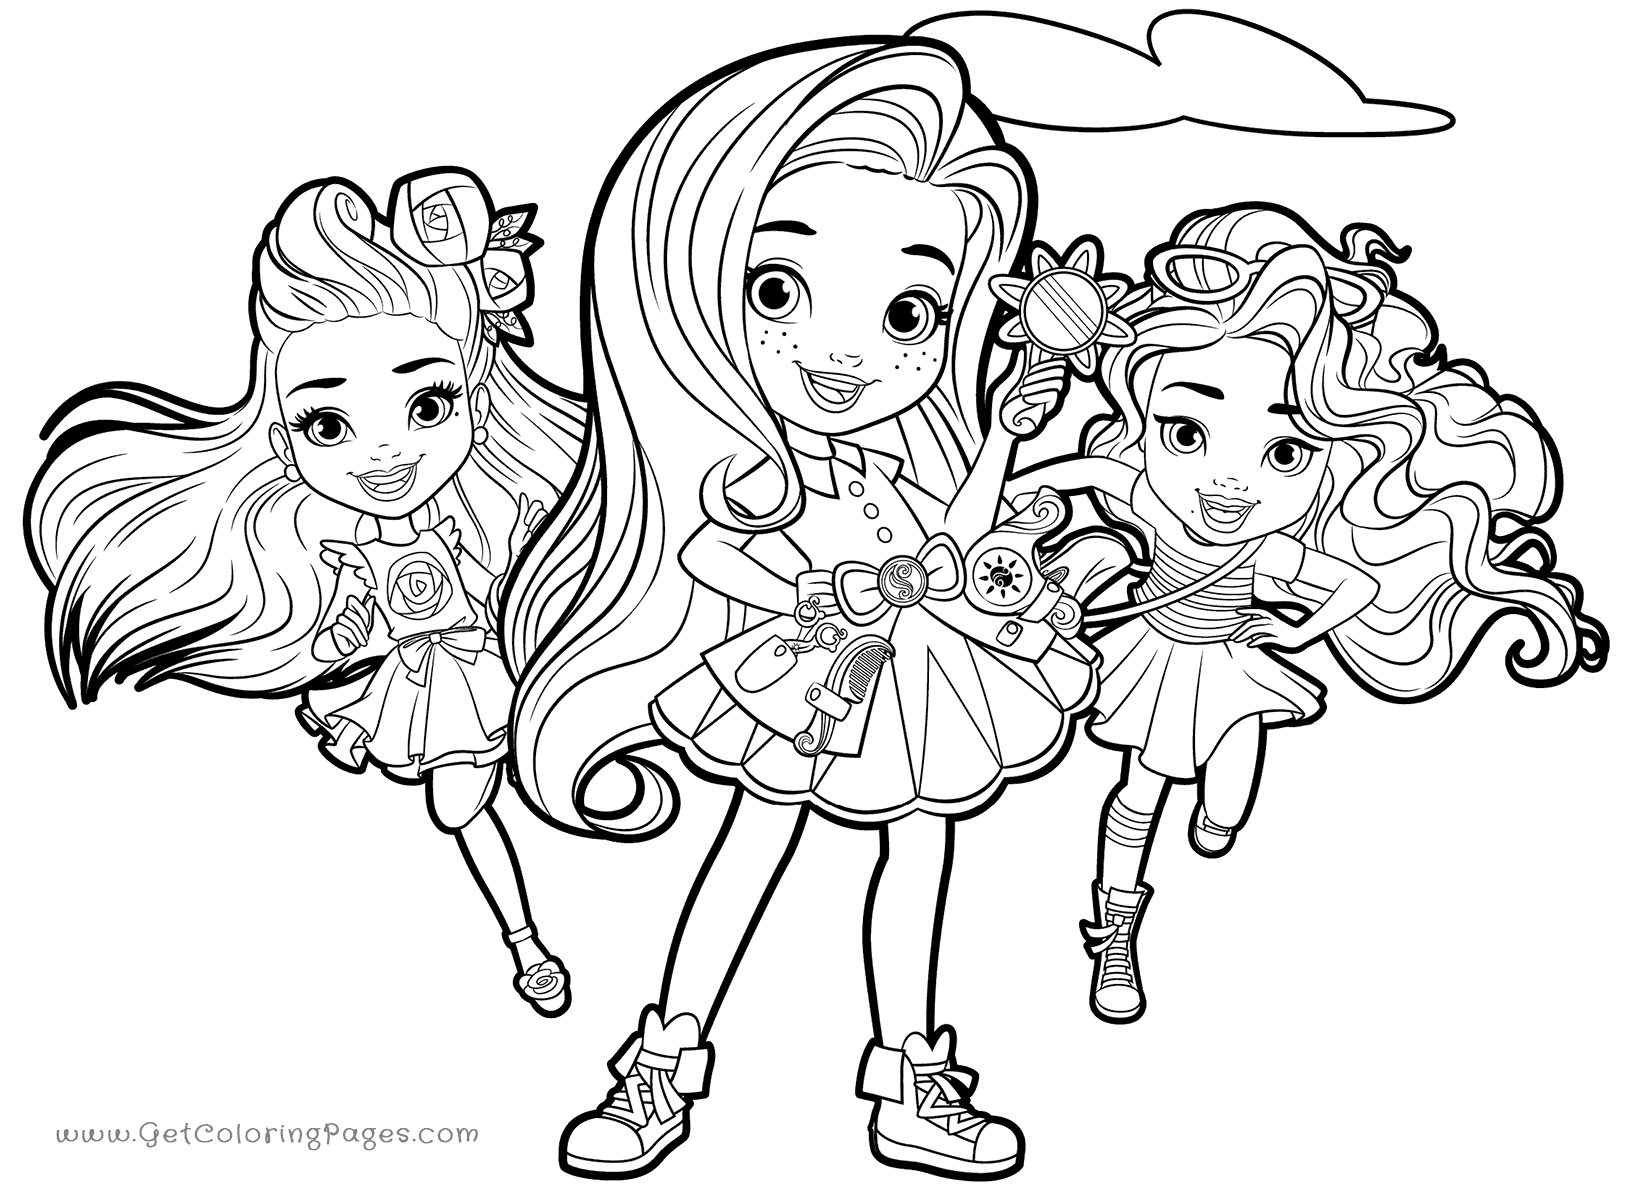 1640x1200 Sunny And Her Best Friends Coloring Pages